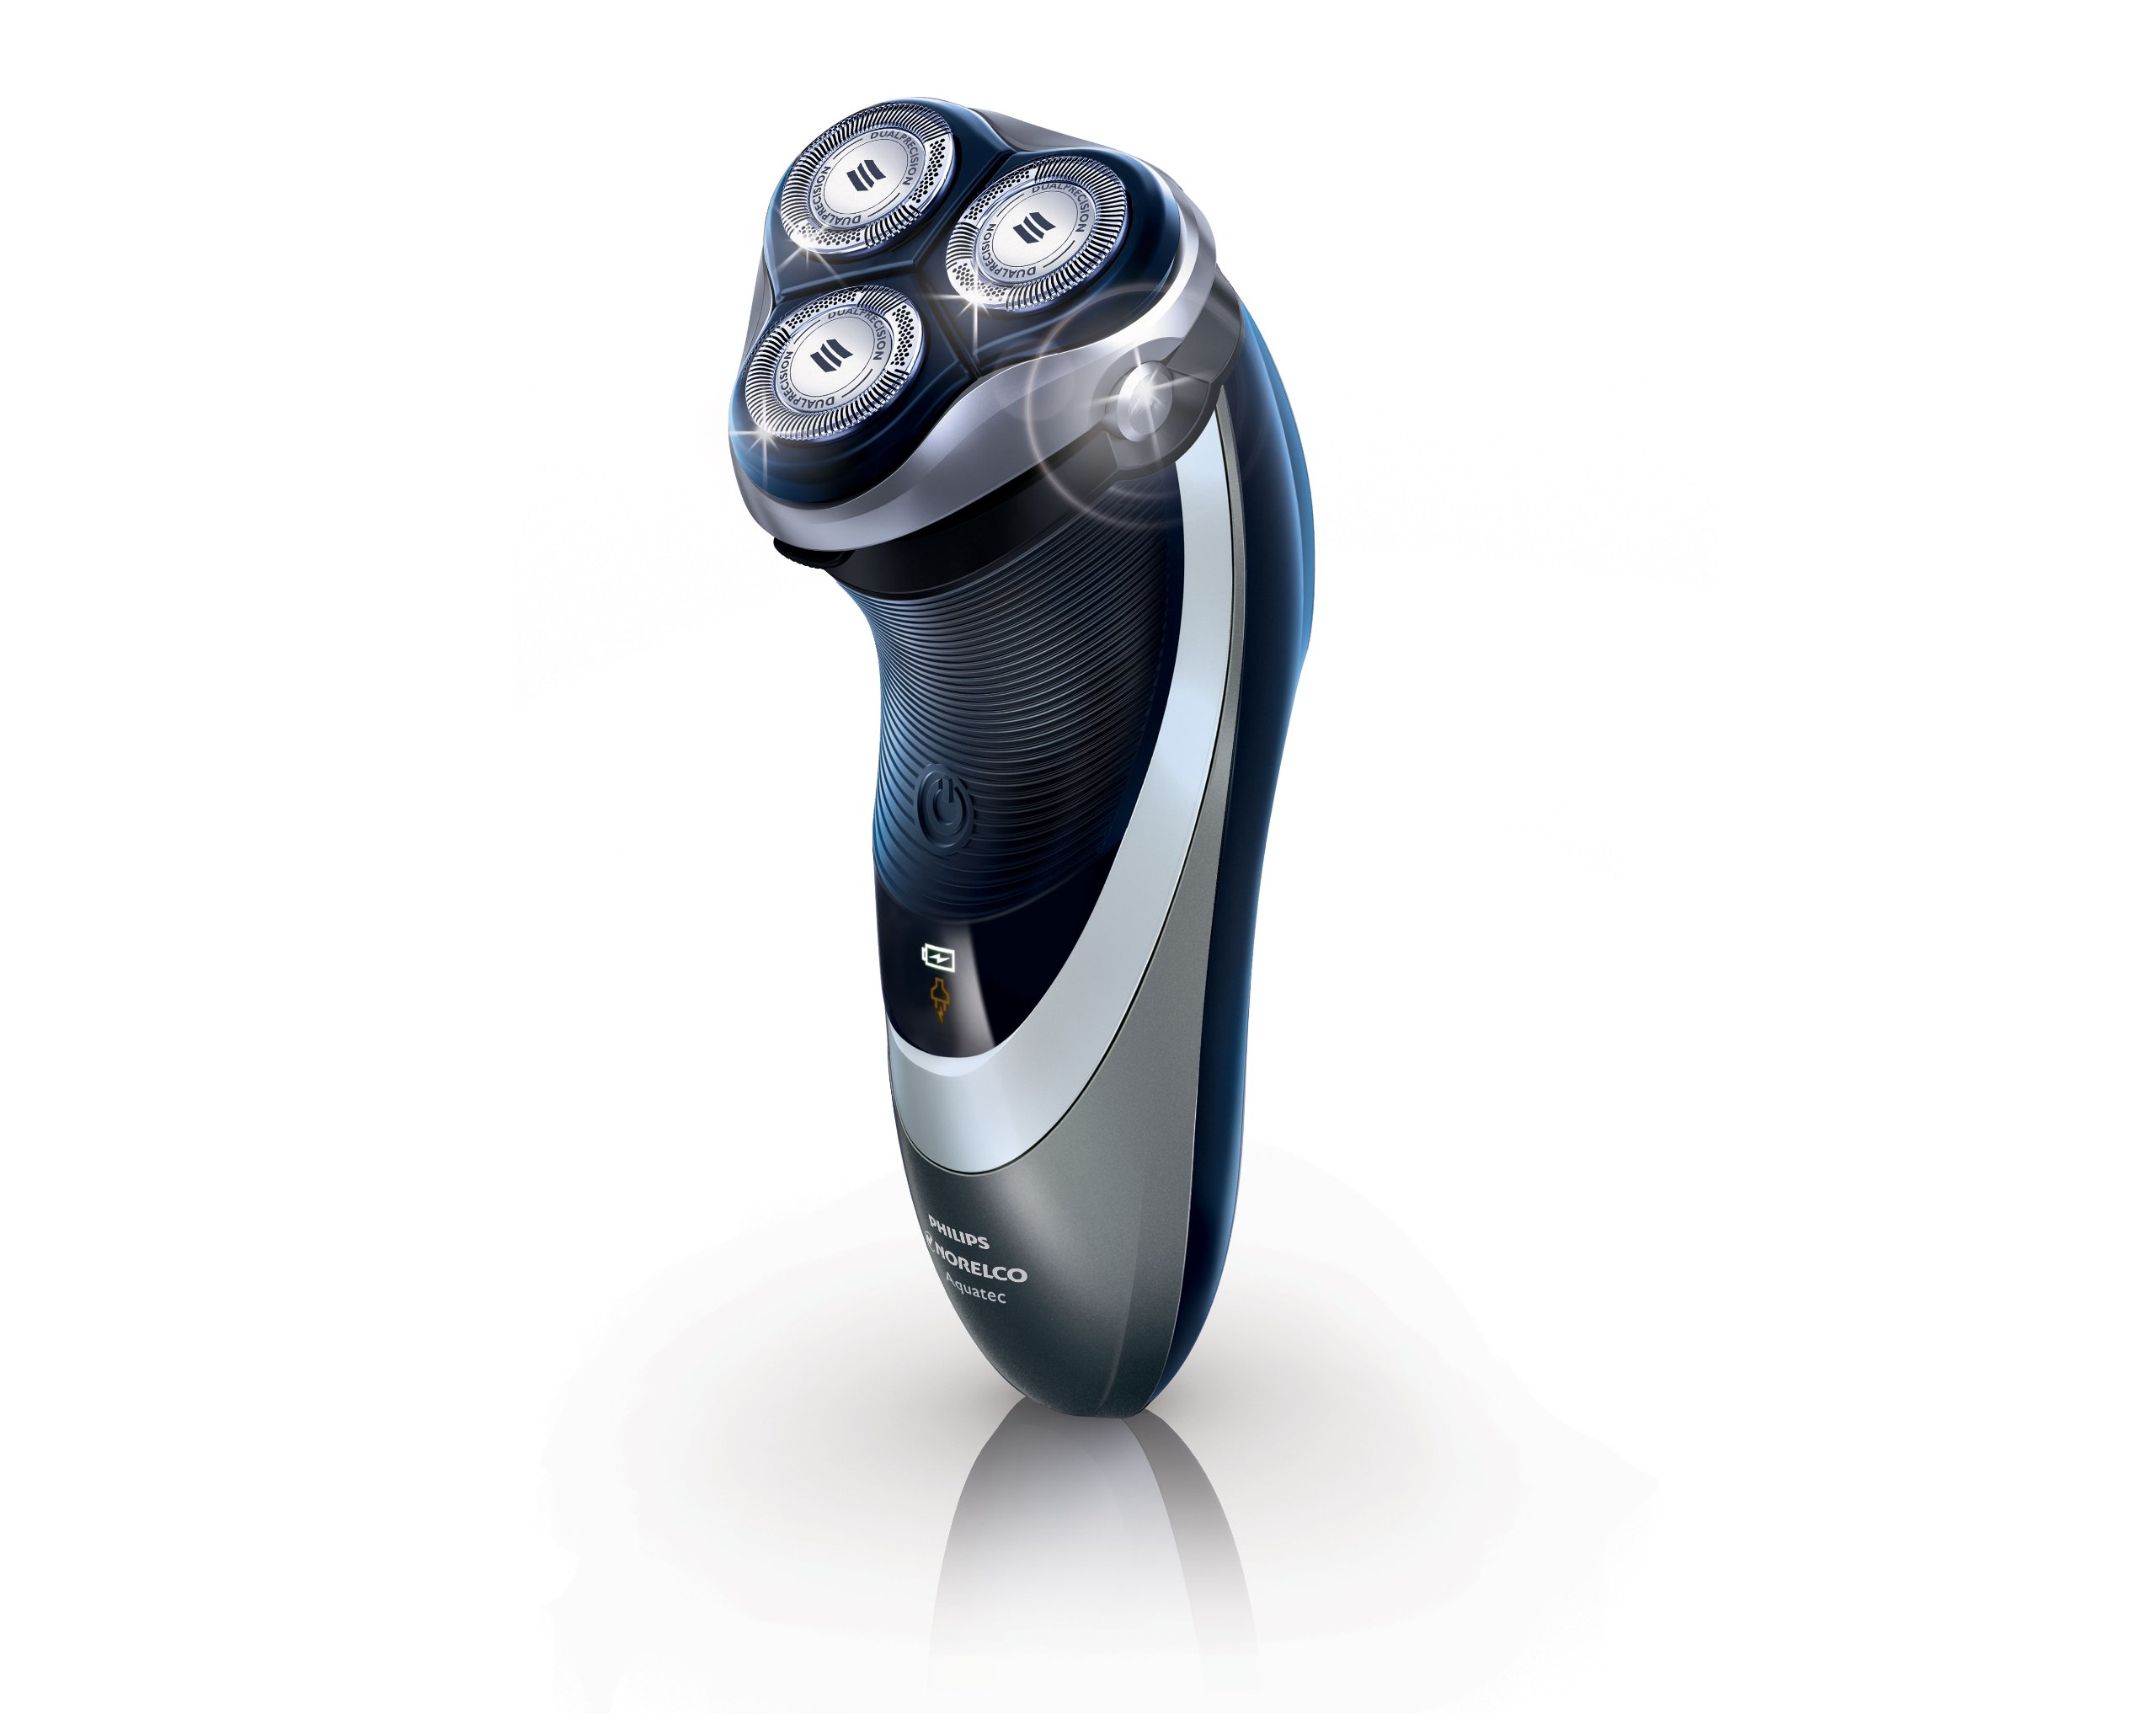 Philips Norelco Shaver 4500 (Model AT830/46) Frustration Free Packaging by Philips Norelco (Image #3)